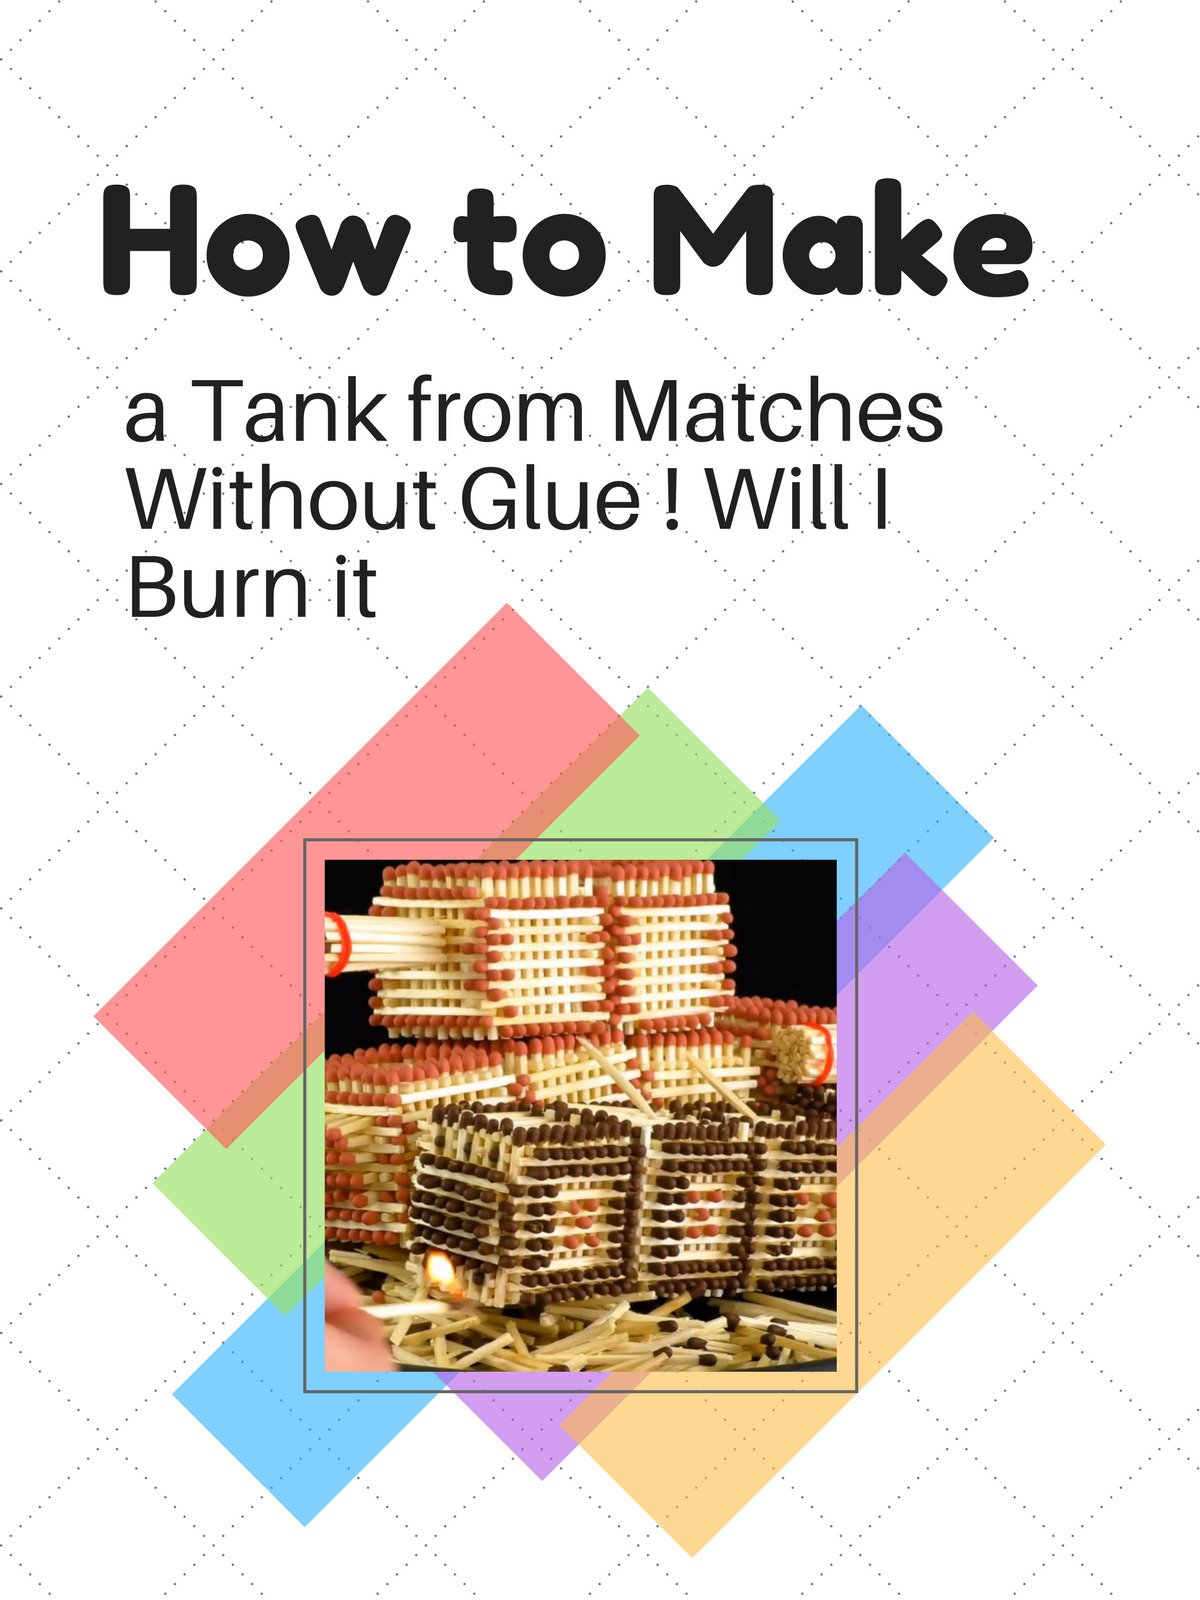 How to Make a Tank from Matches Without Glue ! Will I Burn it